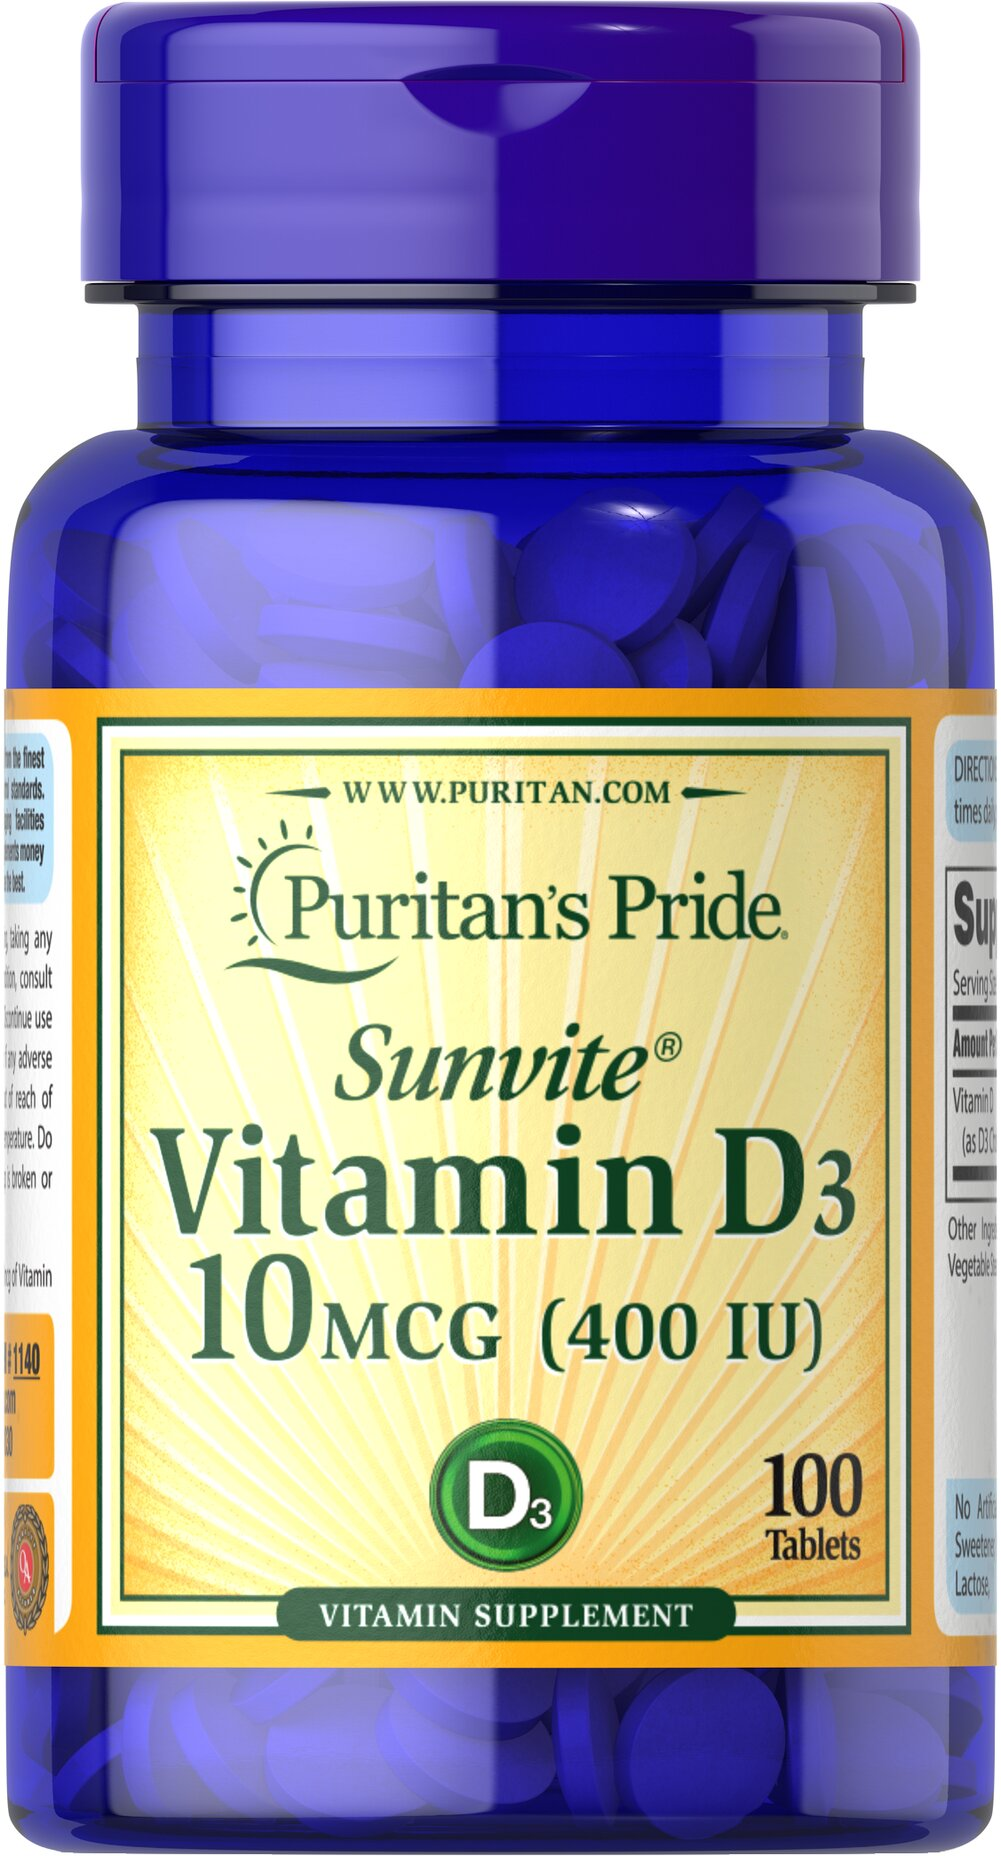 Vitamin D3 400 IU <ul><li> Supports Bone and Immune System Health**</li><li>Vitamin D3 is a more potent and bioavailable form compared to D2.<br /></li><li> As an essential nutrient, Vitamin D is important for optimal health.** </li><li>Vitamin D assists Calcium in bone maintenance and plays a role in immune system health.**</li></ul> 100 Tablets 400 IU $6.49